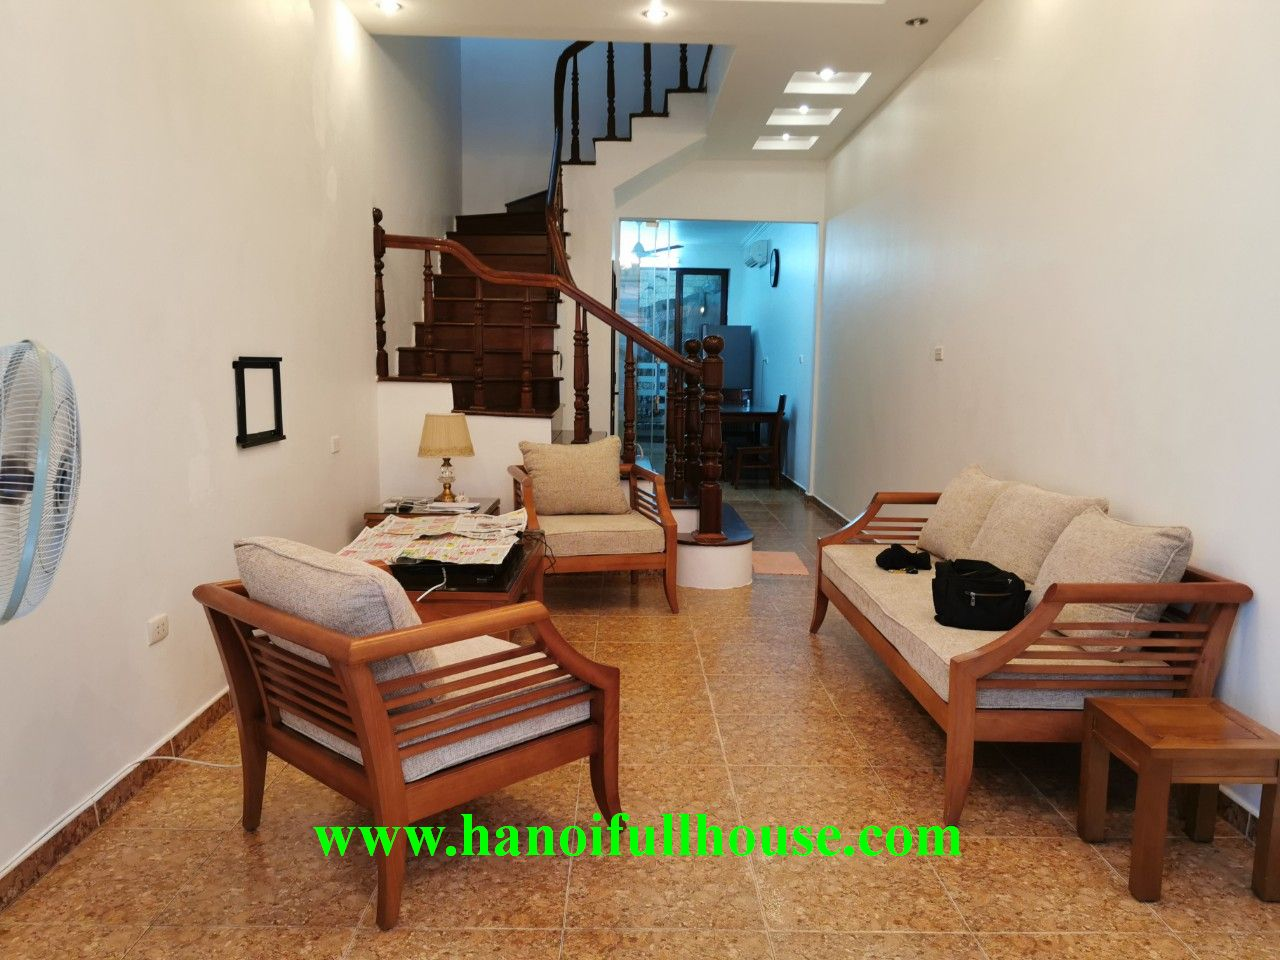 Private house in Quang An ward, close to the Intercontinental and Sheraton hotels for rent